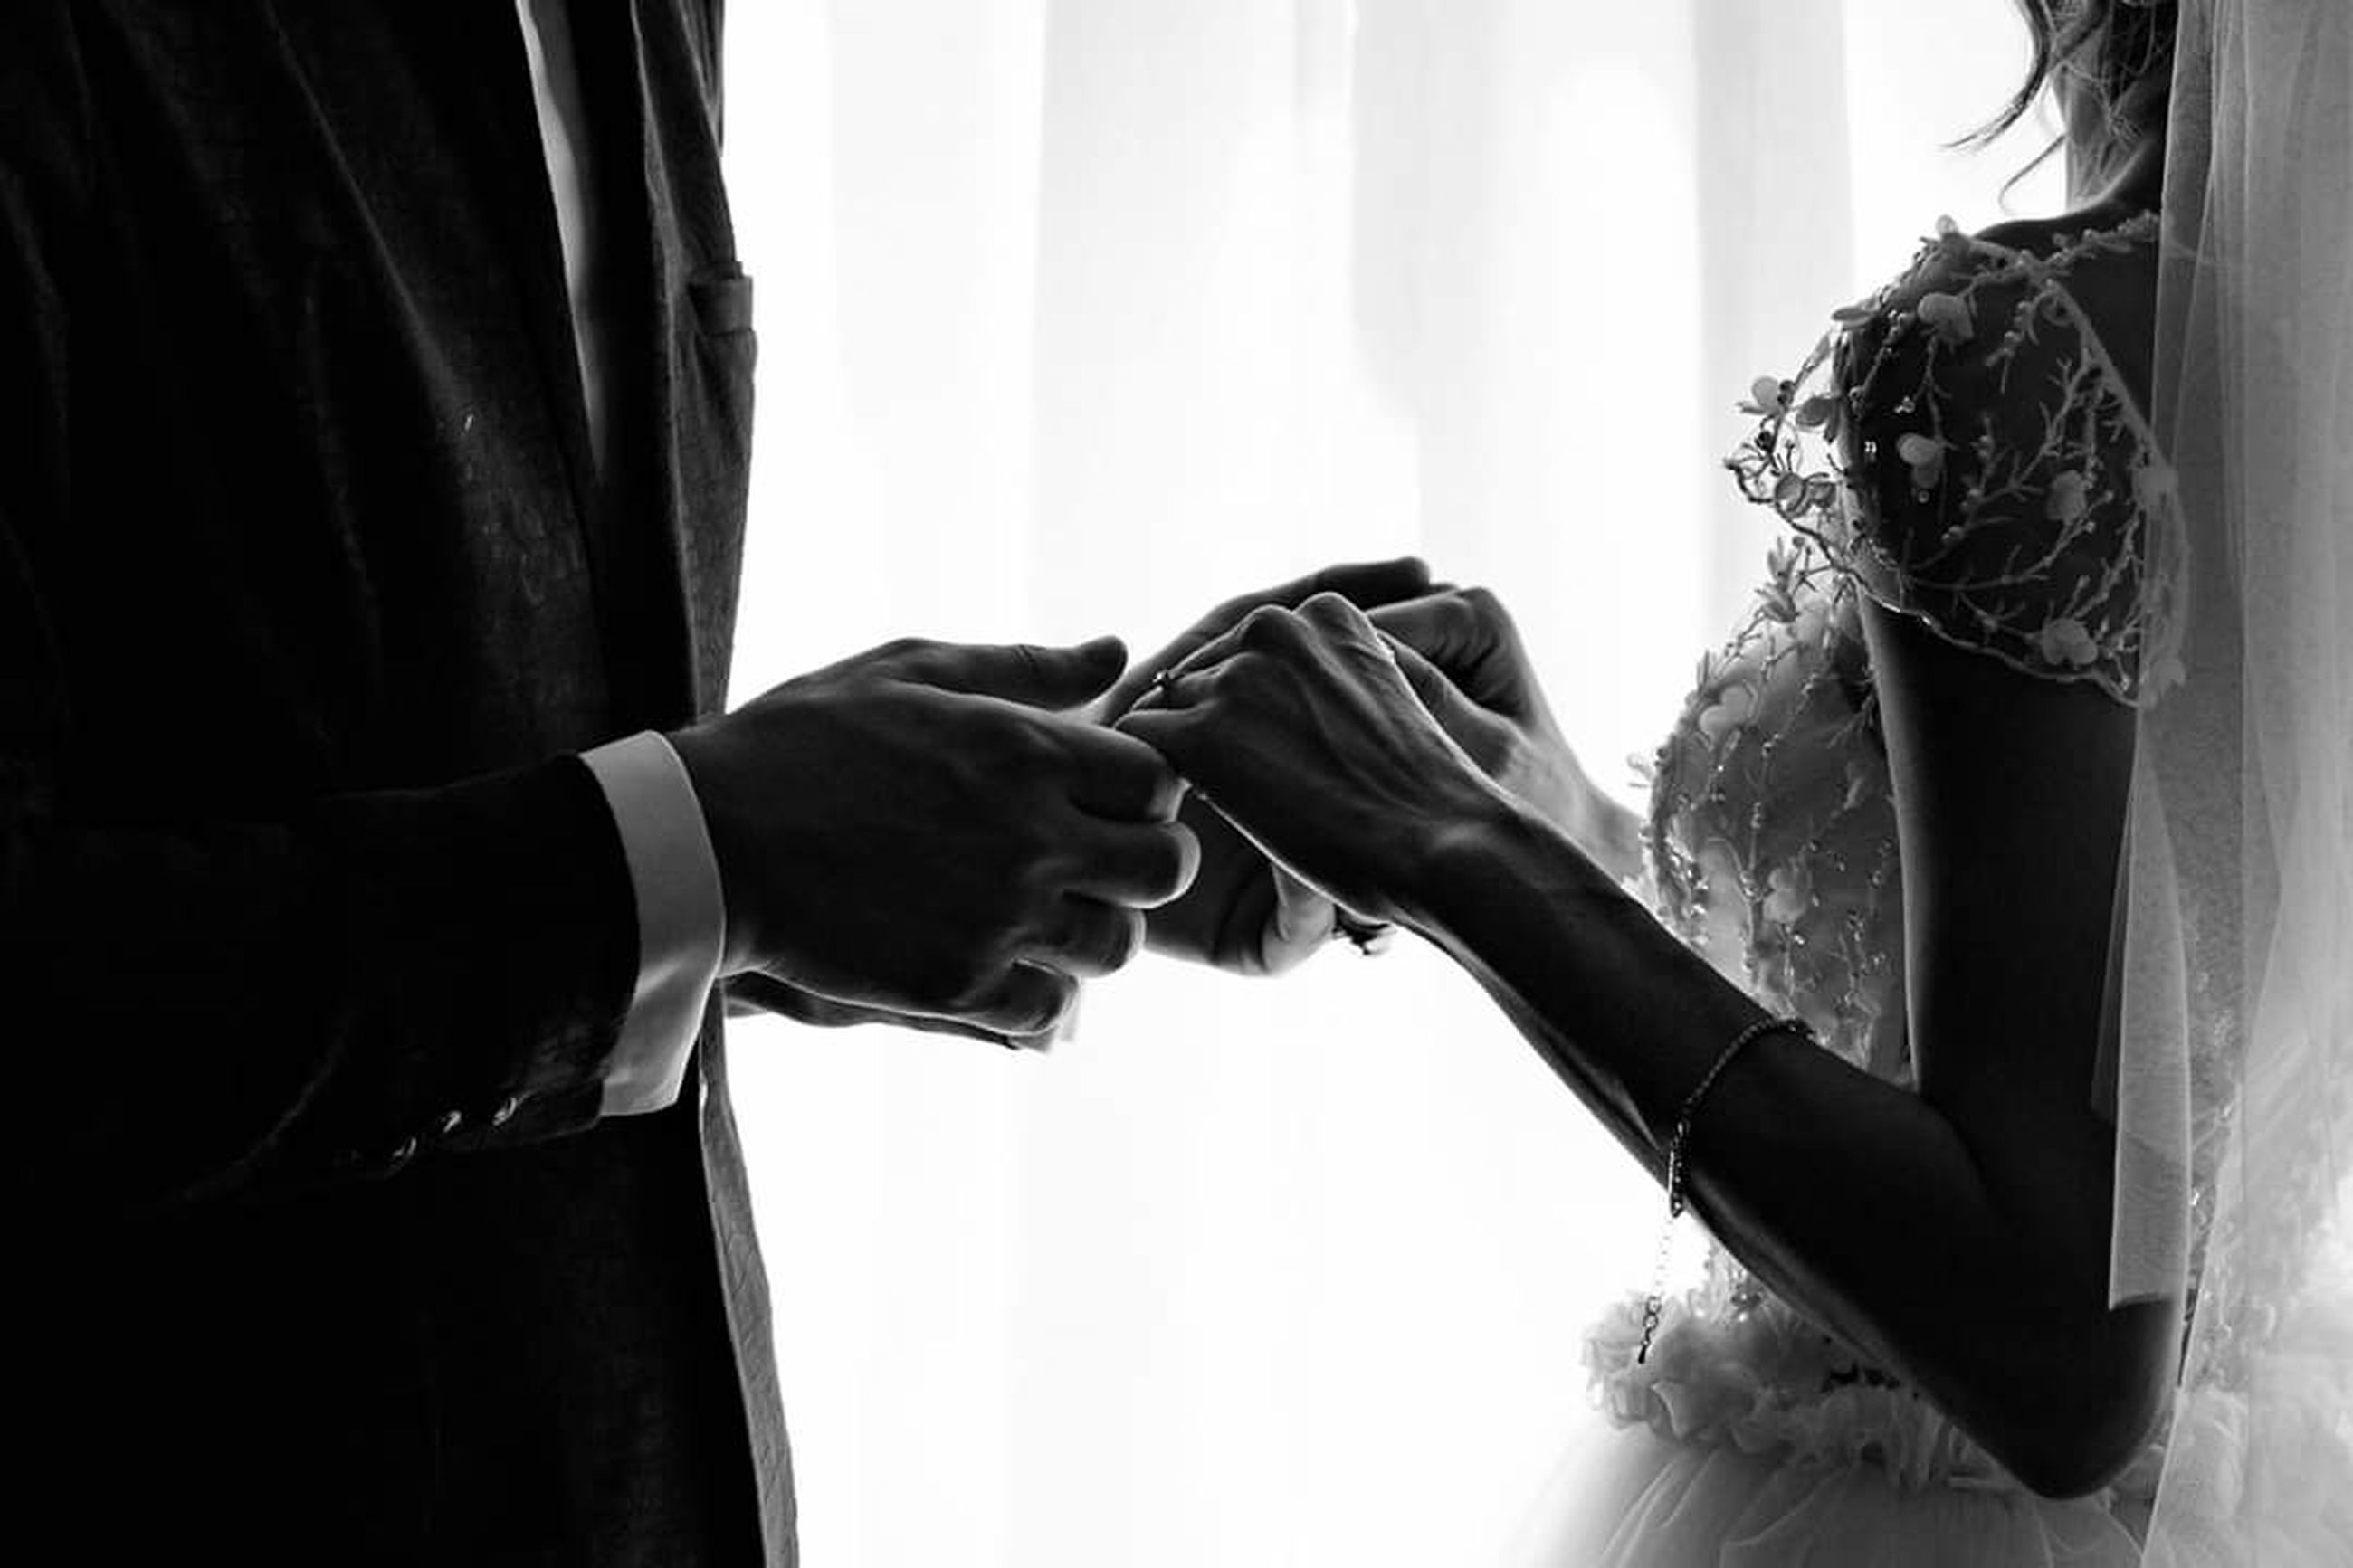 human hand, real people, midsection, indoors, hand, adult, men, wedding, women, holding, bride, newlywed, people, life events, human body part, two people, celebration, wedding dress, event, wedding ceremony, couple - relationship, getting dressed